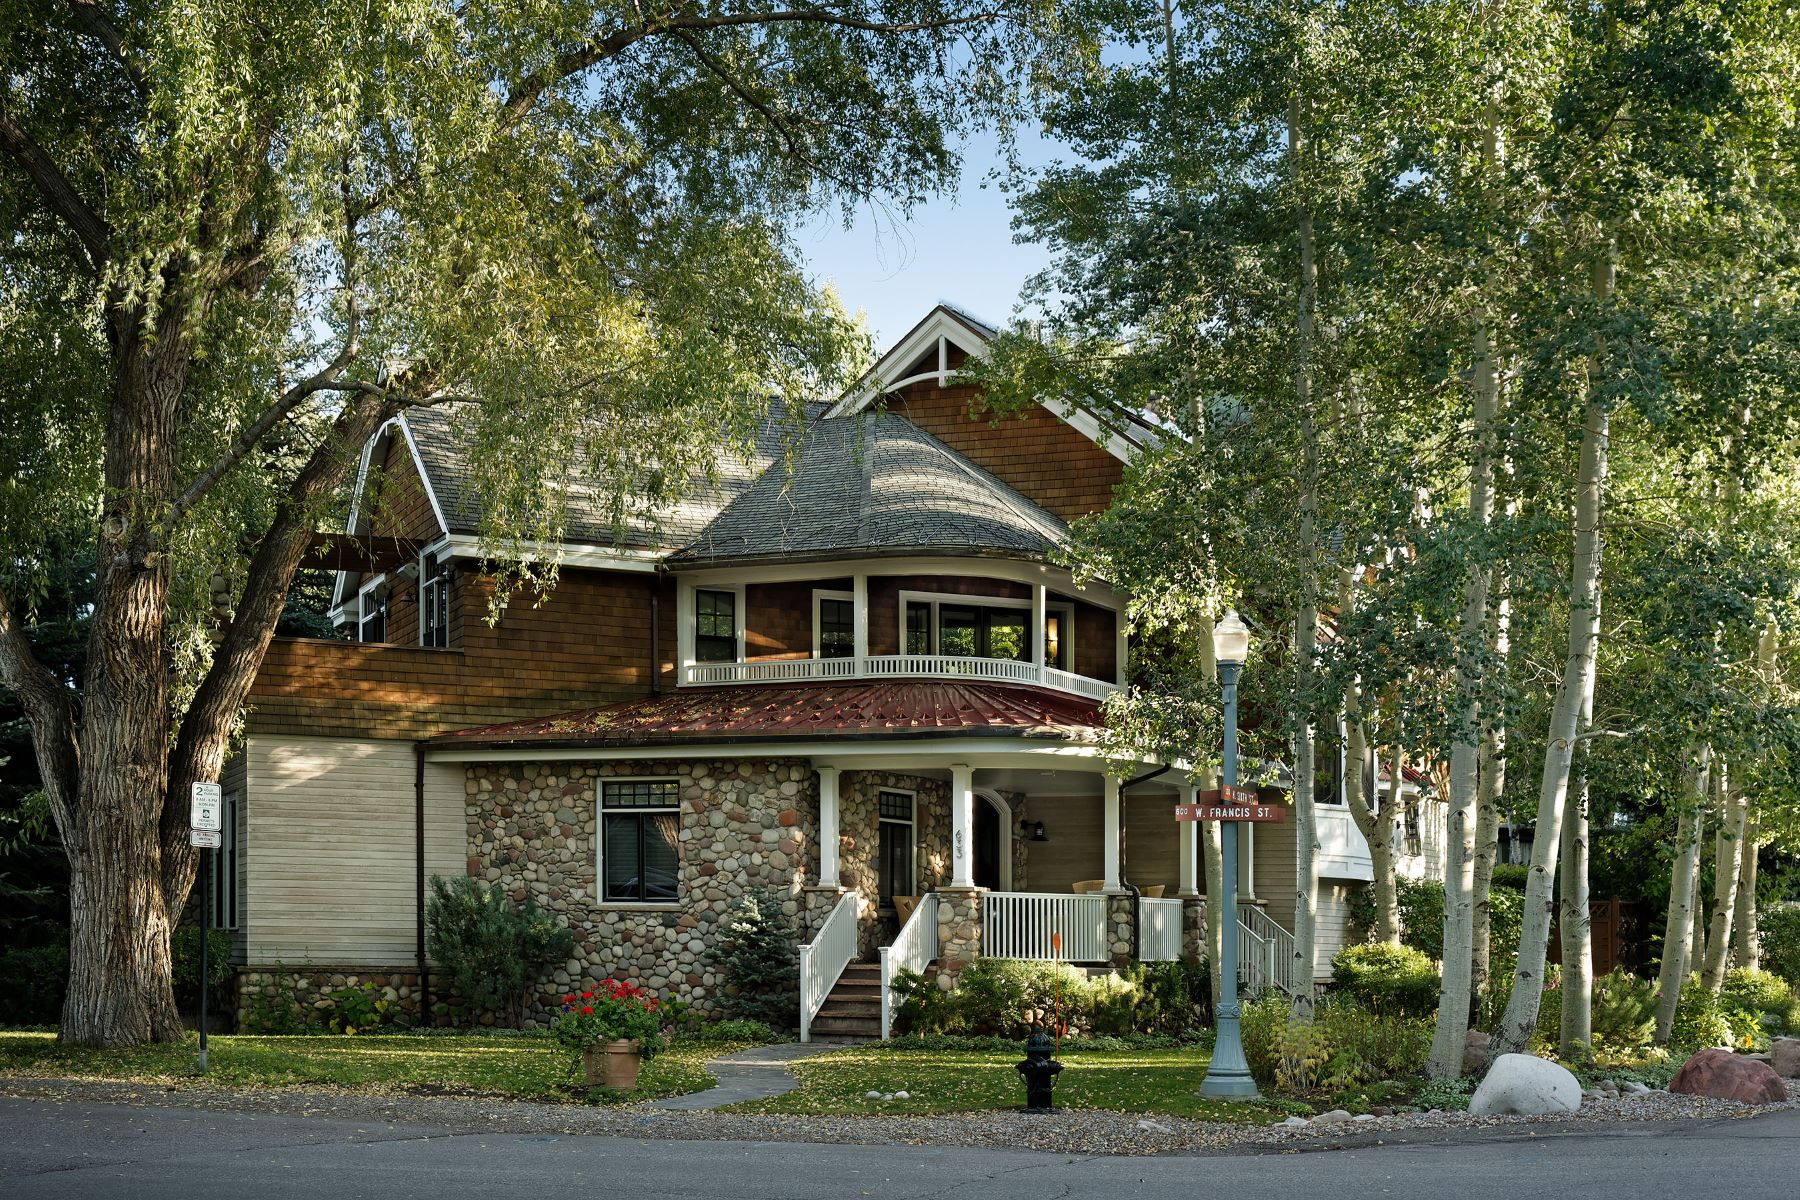 Single Family Home for Sale at Traditional meets contemporary 633 W Francis Street, West End, Aspen, Colorado, 81611 United States